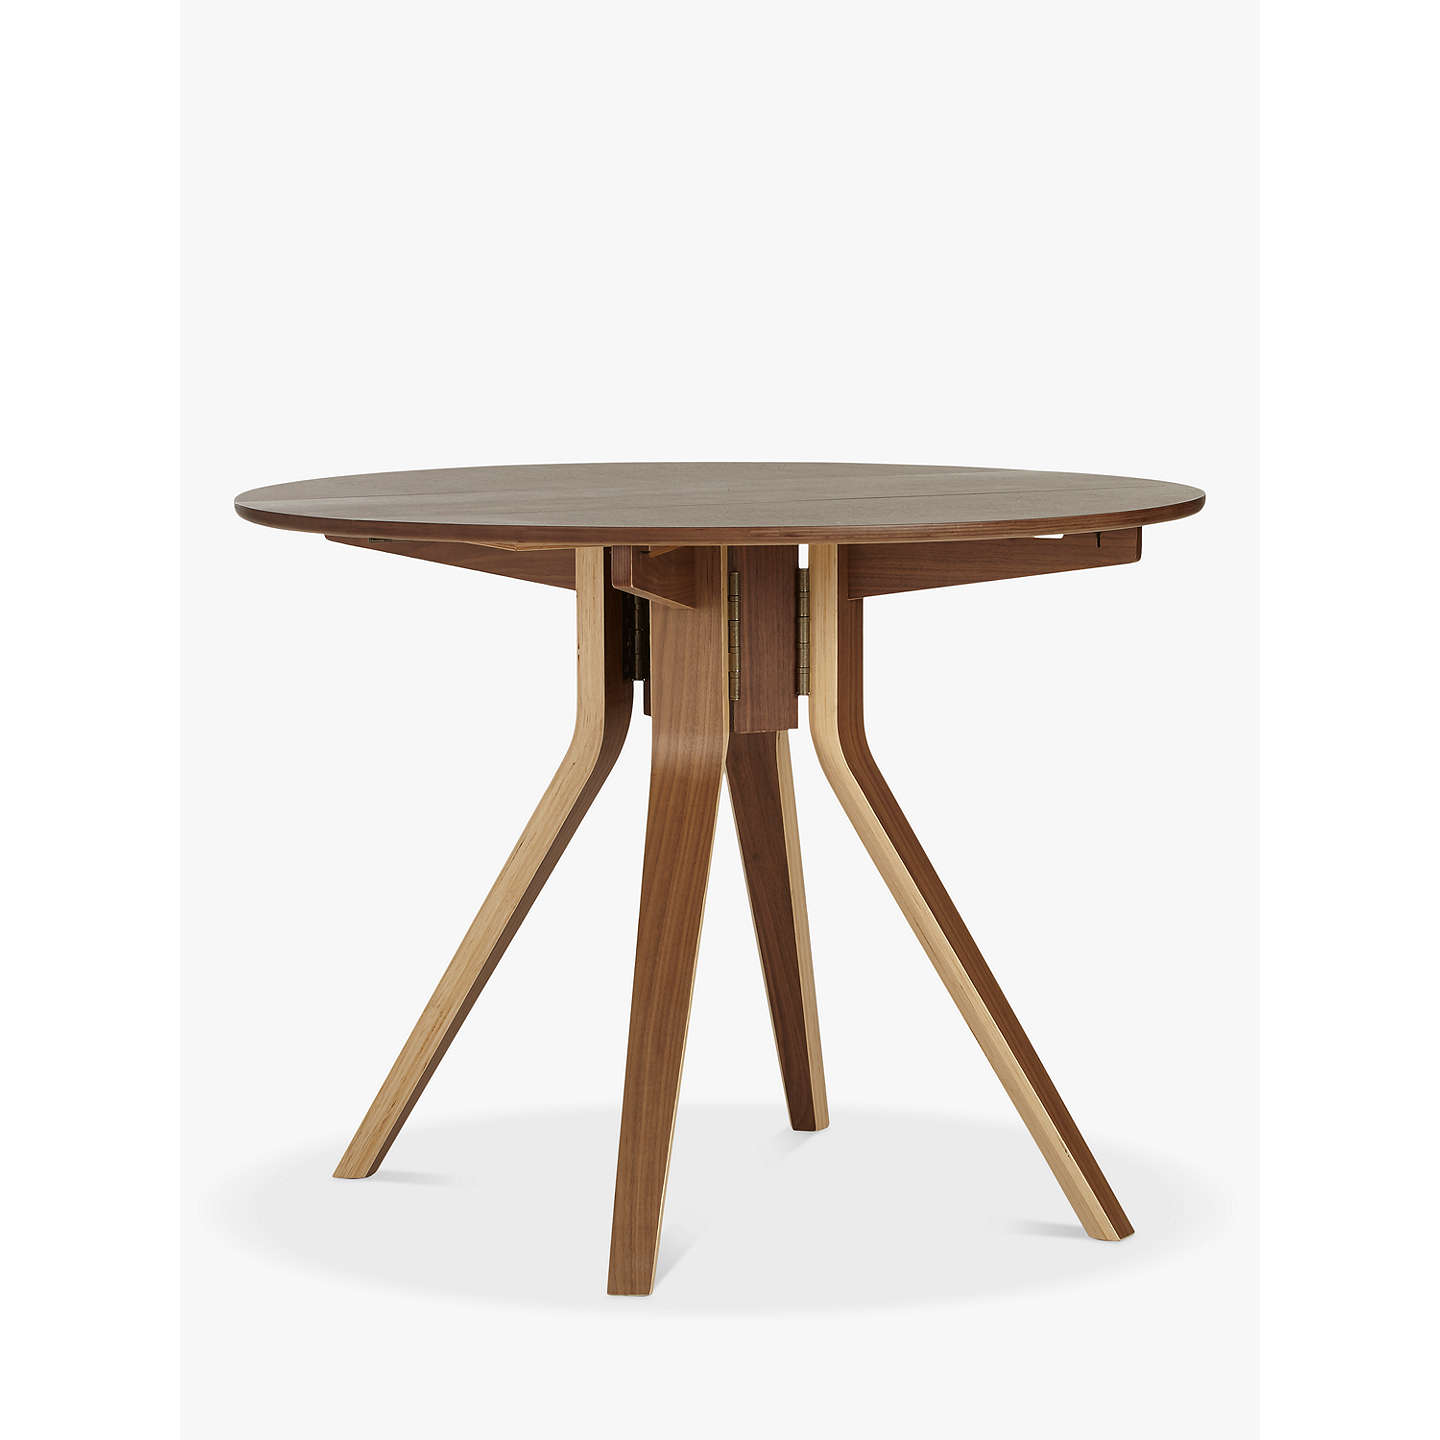 House By John Lewis Radar 4-Seater Drop-Leaf Dining Table